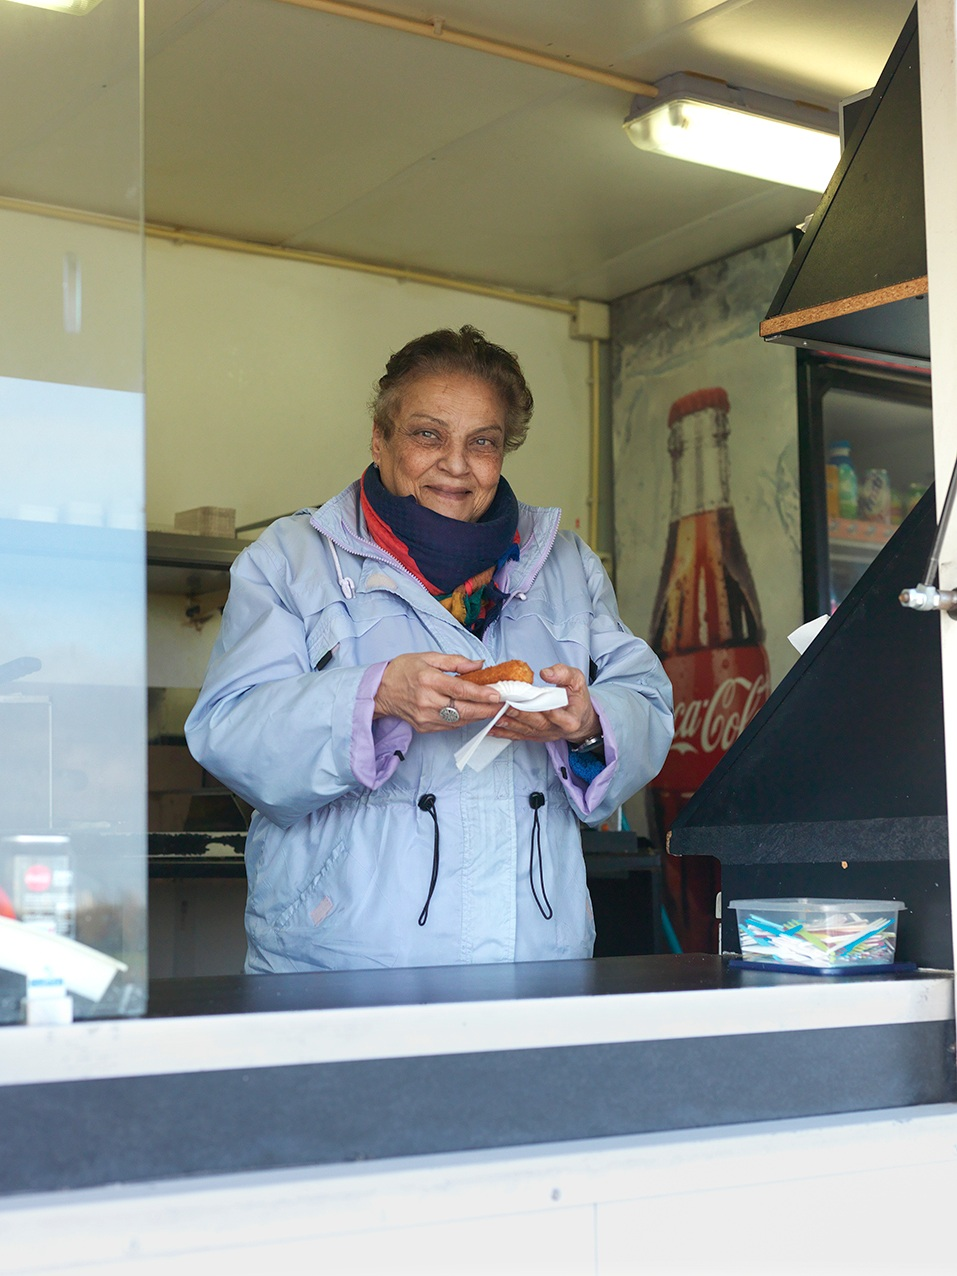 Aida Abdoul owner of a snack wagon